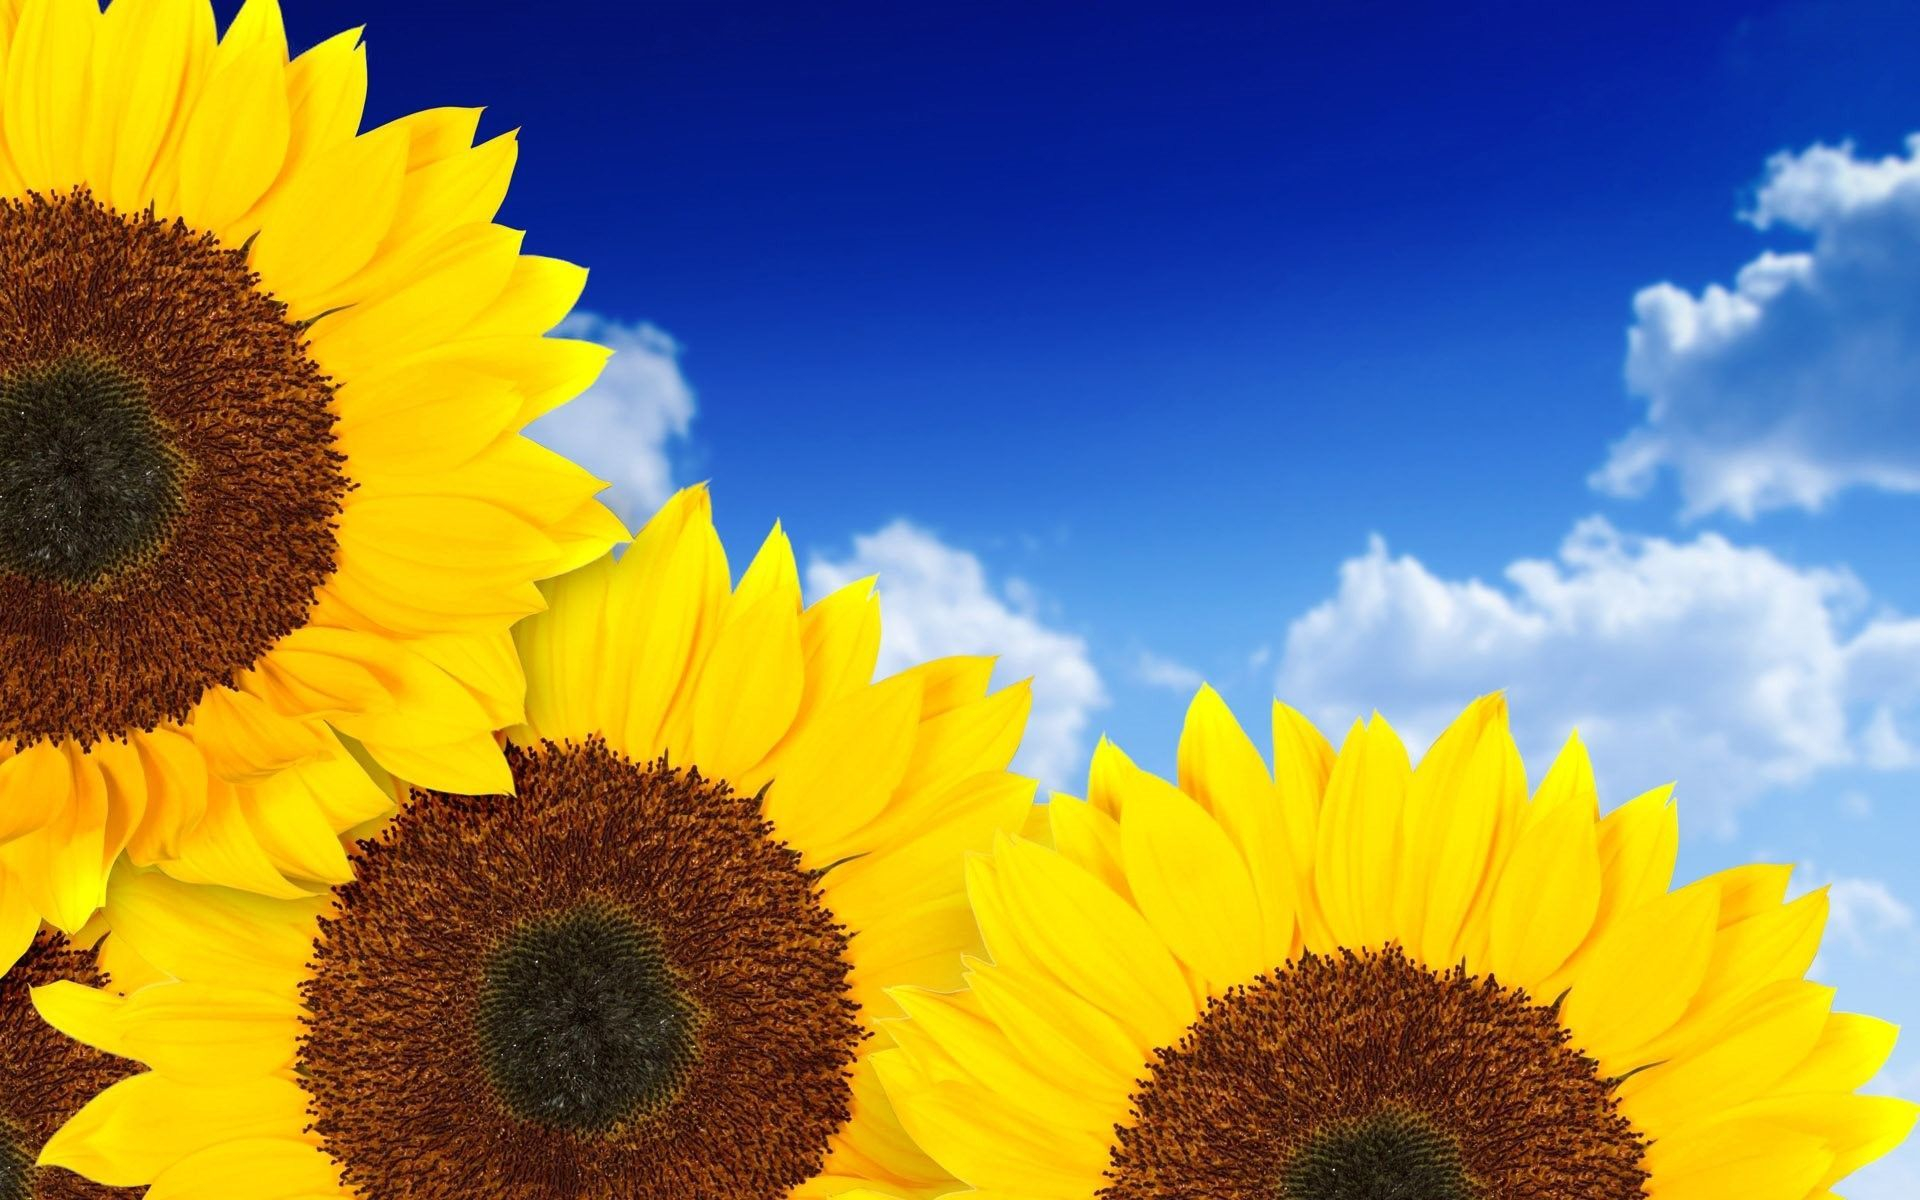 Res: 1920x1200, Pure Yellow Sunflowers Wallpaper  768x480 #sunflowerwallpaper Res: 1920x1200, Pure Yellow Sunflowers Wallpaper  768x480 #sunflowerwallpaper